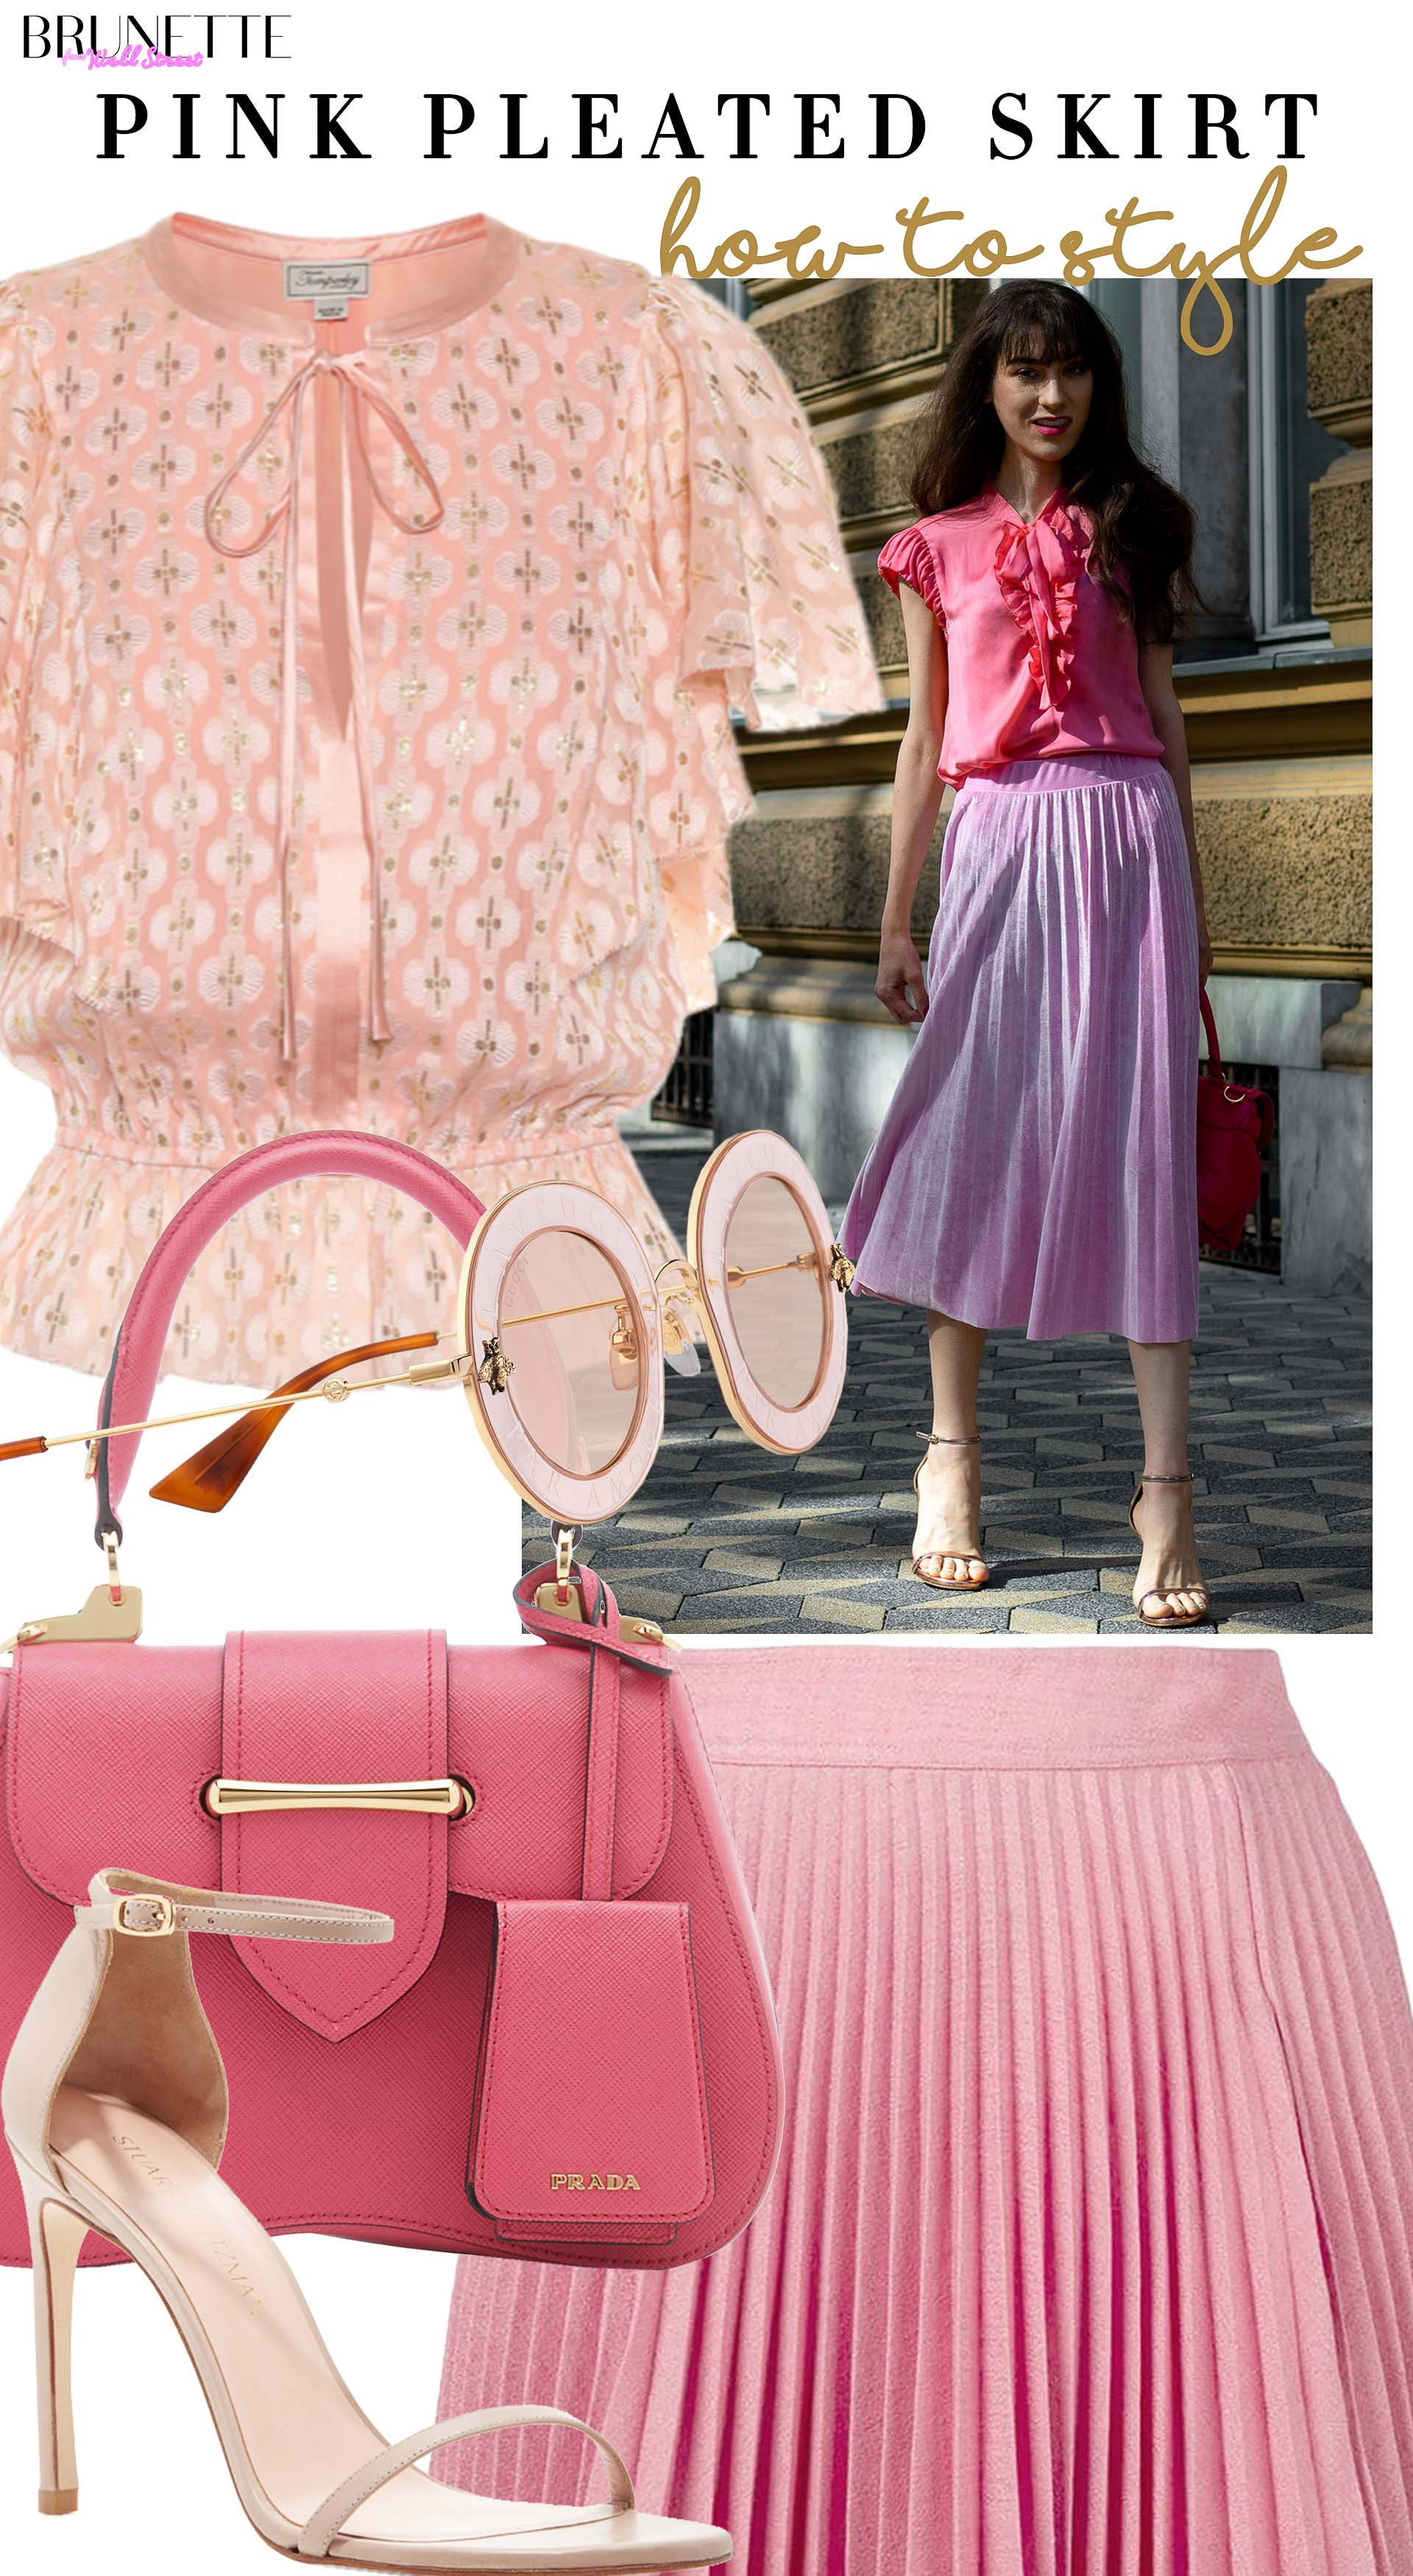 Brunette from Wall Street Veronika Lipar how to syle pink pleate